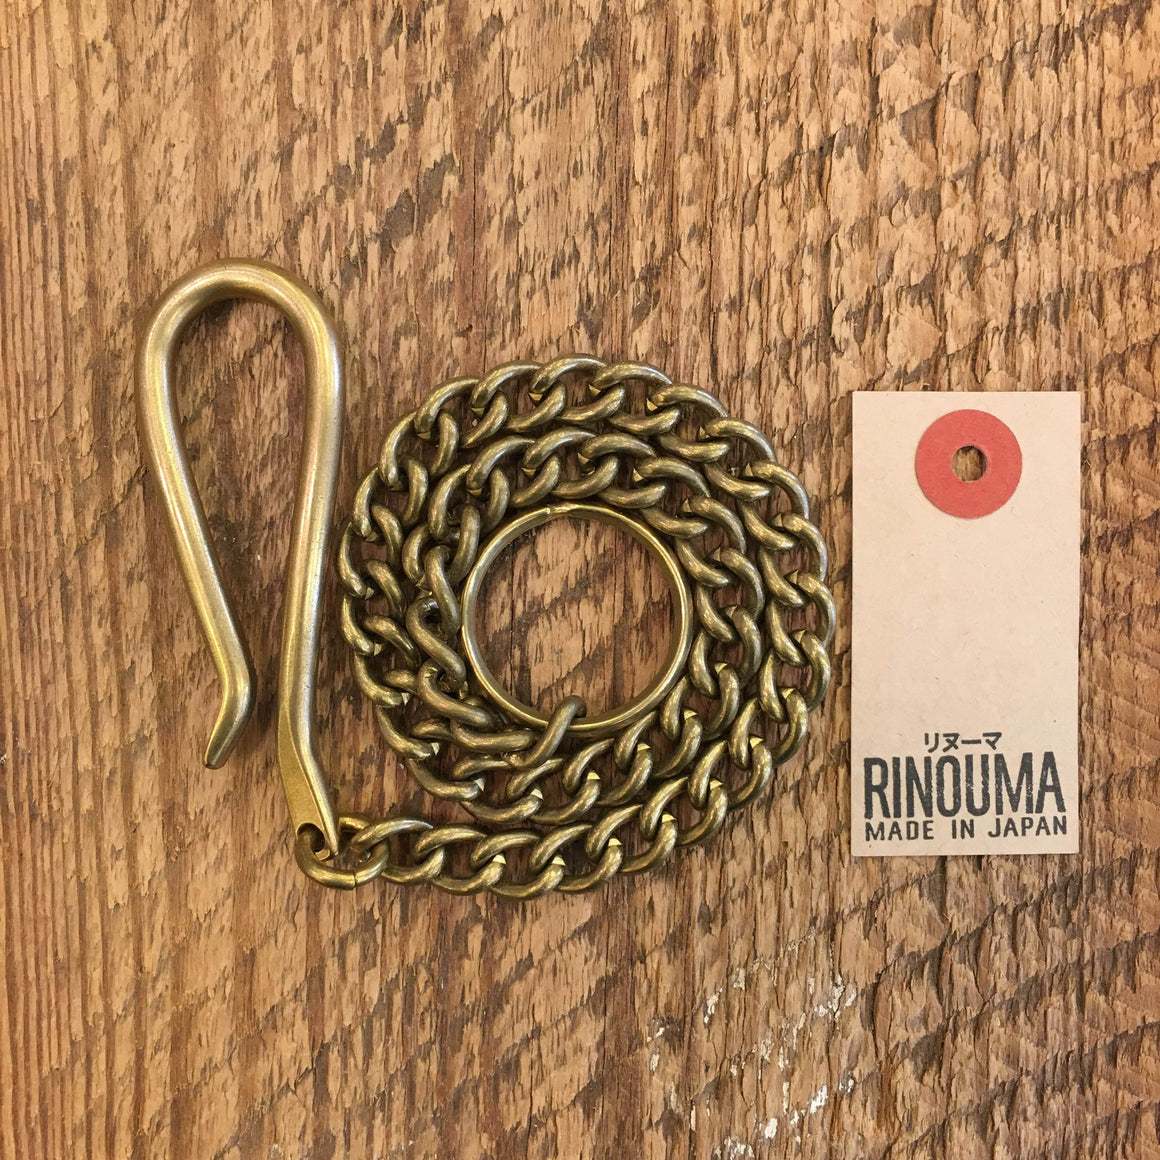 RINOUMA Twist Key Chain w Hook Brass S - Brund - 2